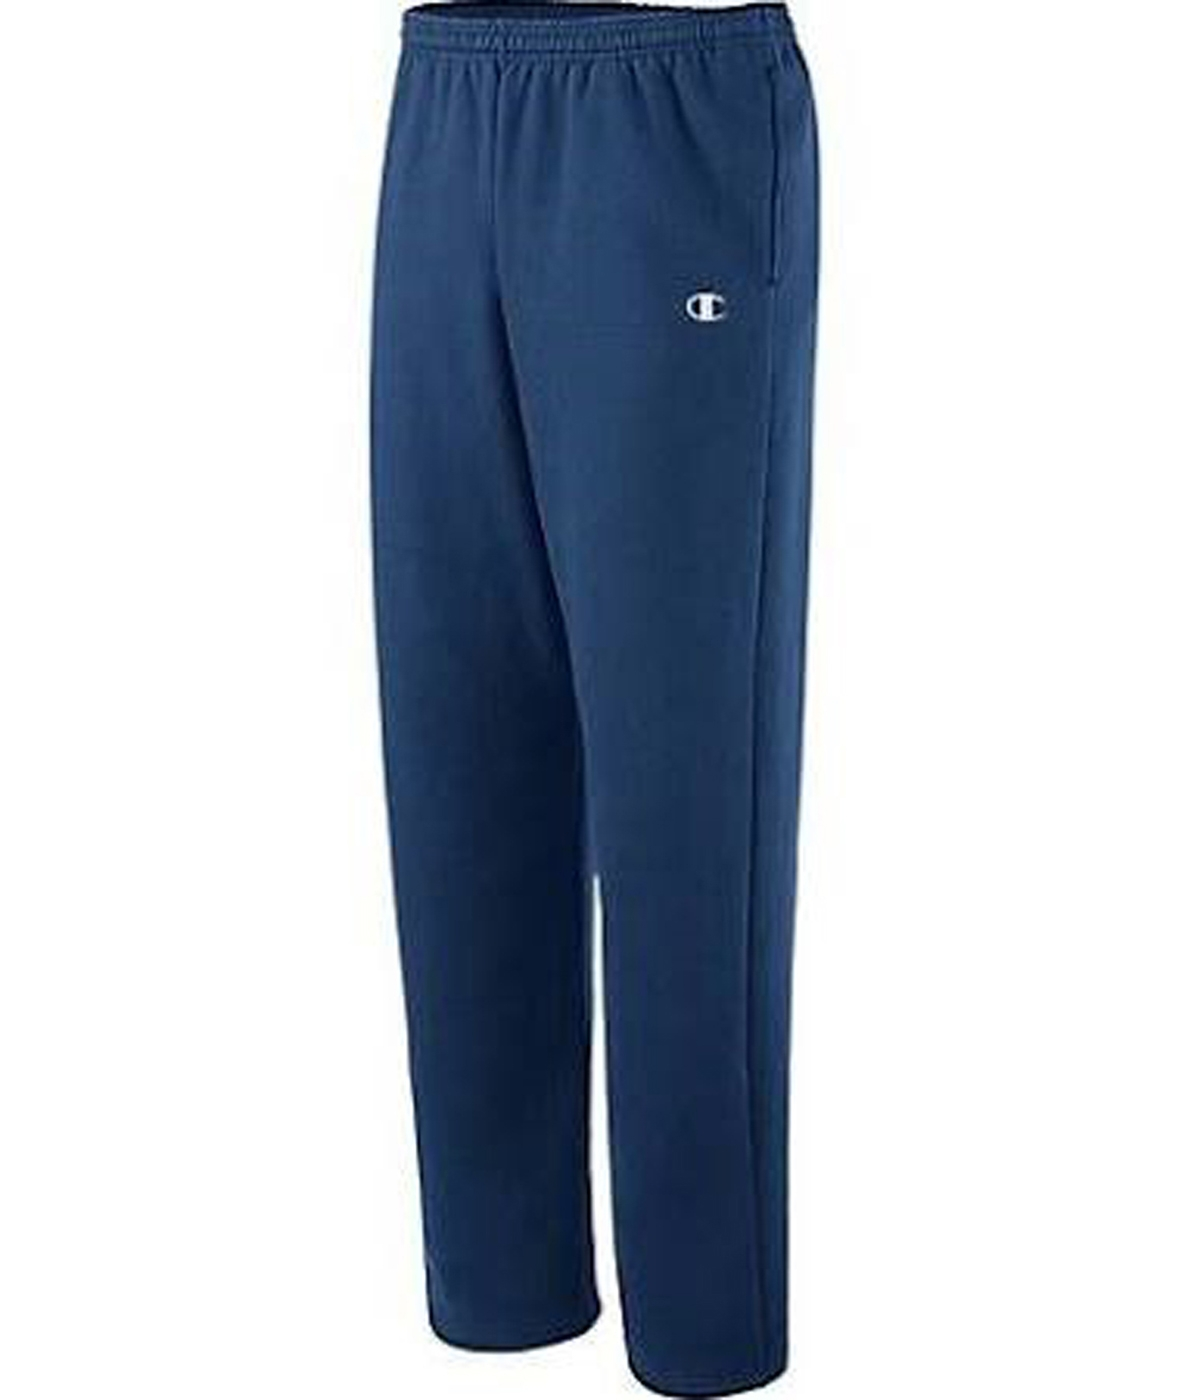 Champion Men's Open Bottom Eco Fleece Sweatpant - Large - Navy - 70080 - Basketball Clothing Basketball Uniforms 70080